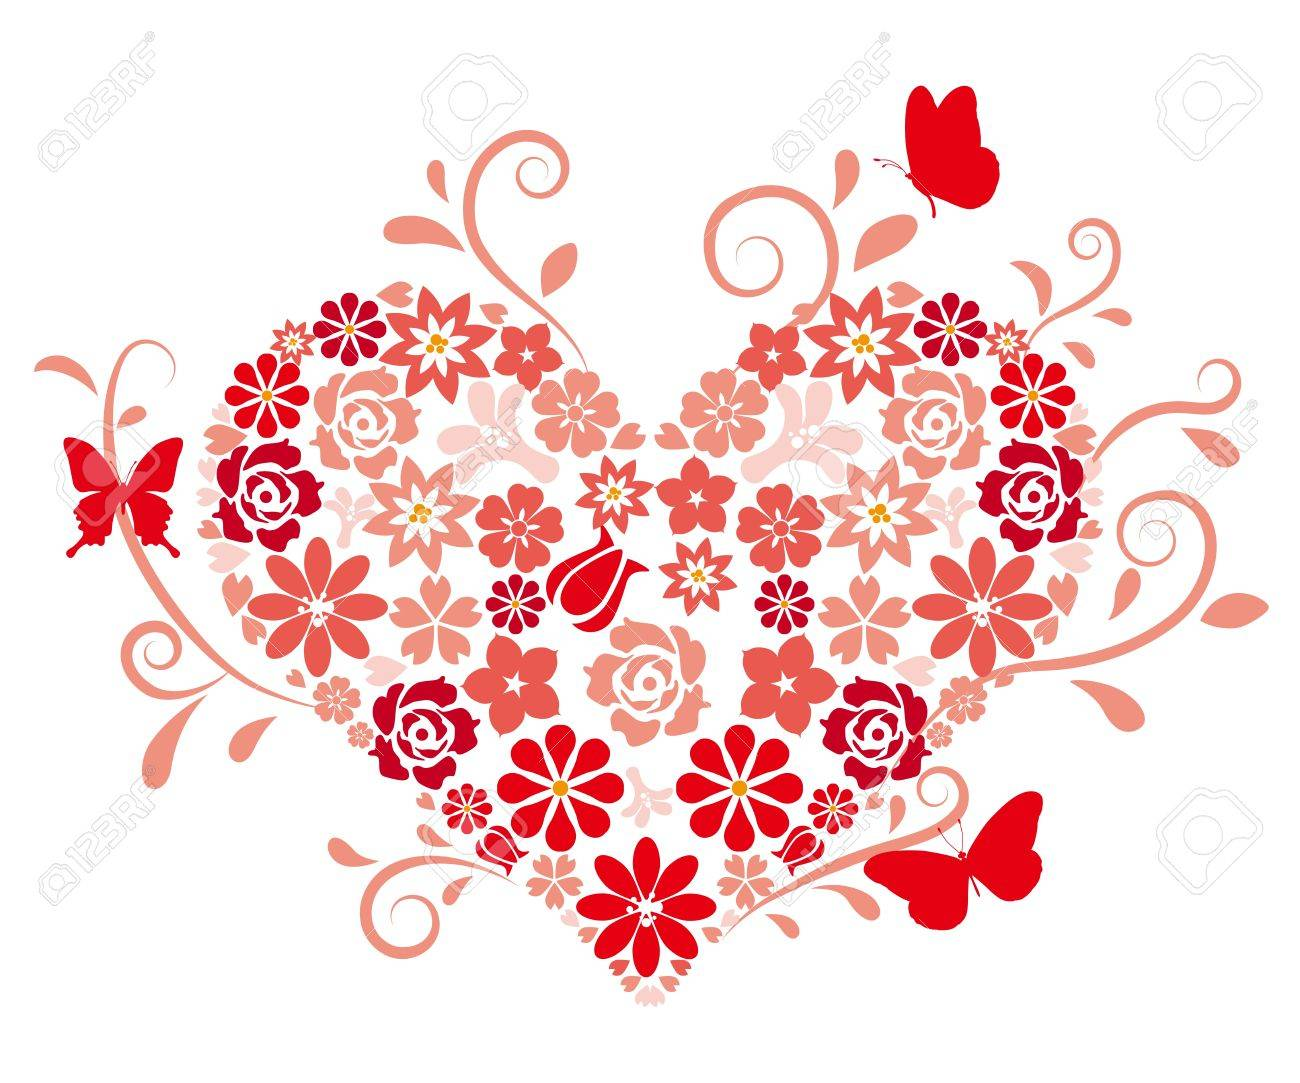 heart shape maked by flowers royalty free cliparts, vectors, and, Beautiful flower